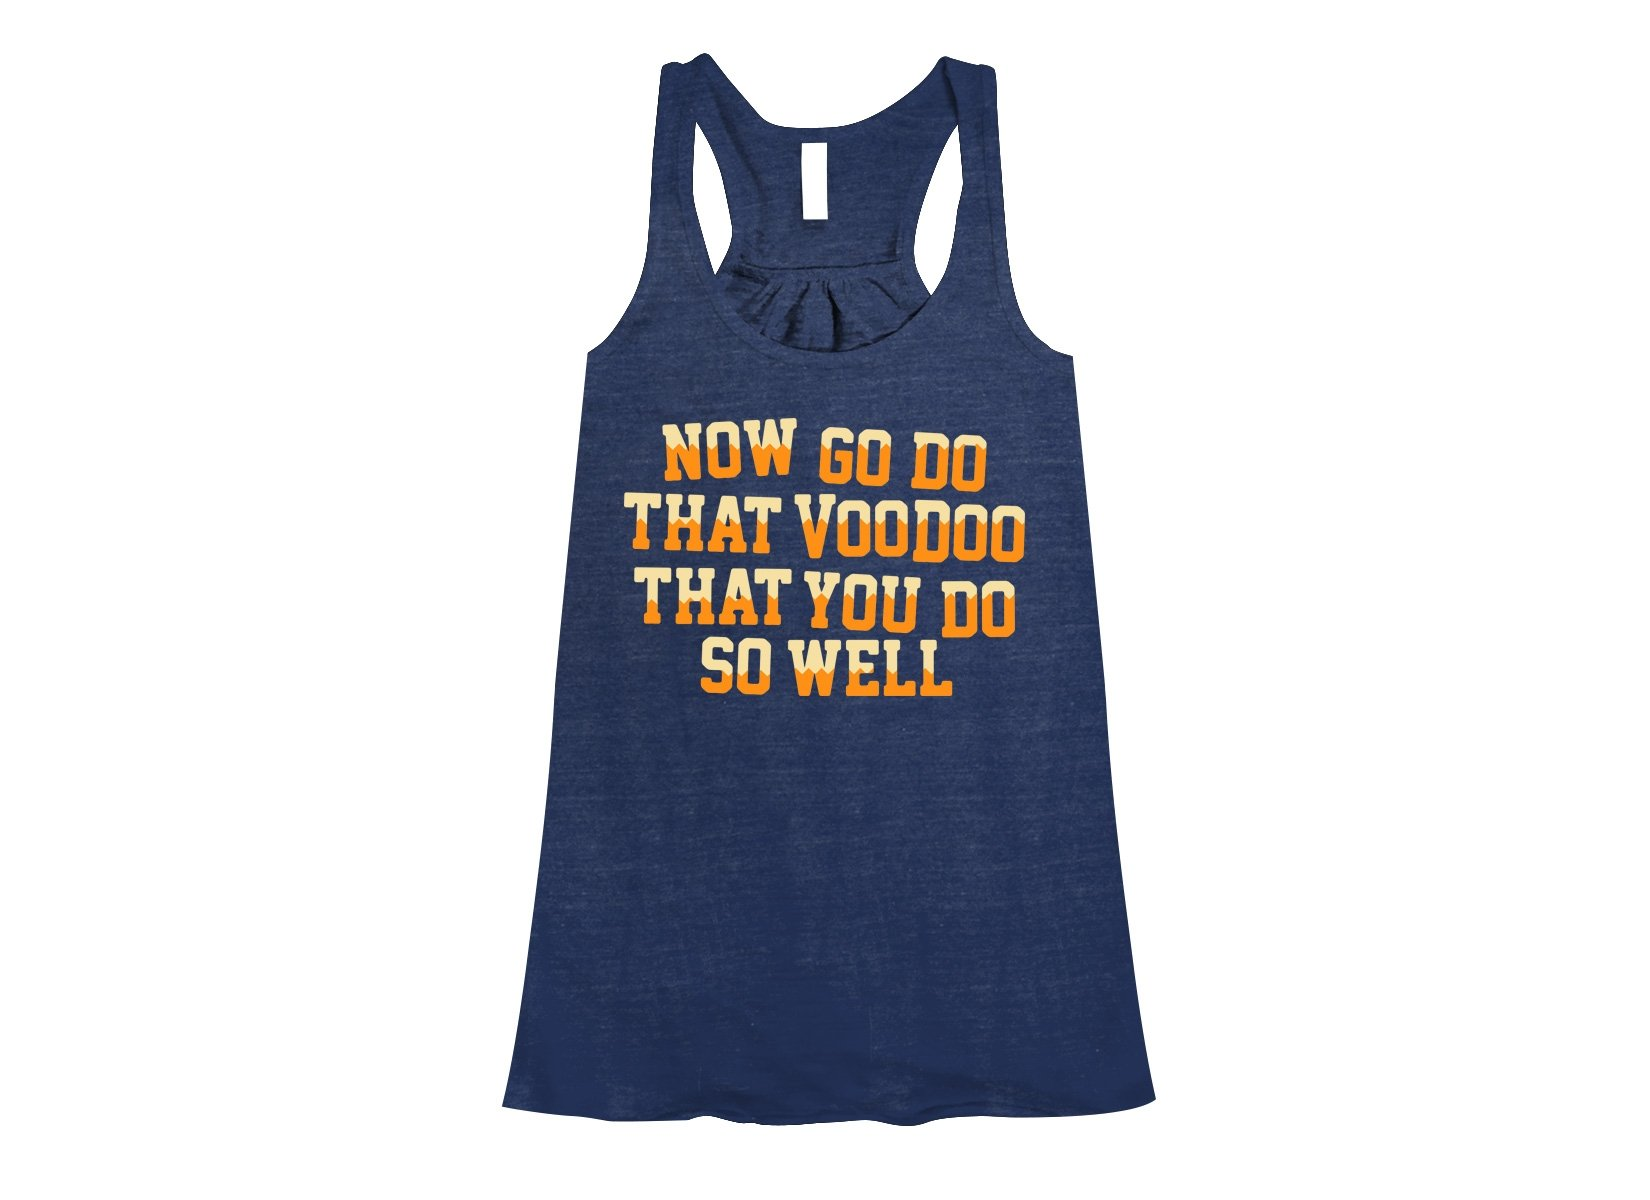 That Voodoo That You Do So Well on Womens Tanks T-Shirt